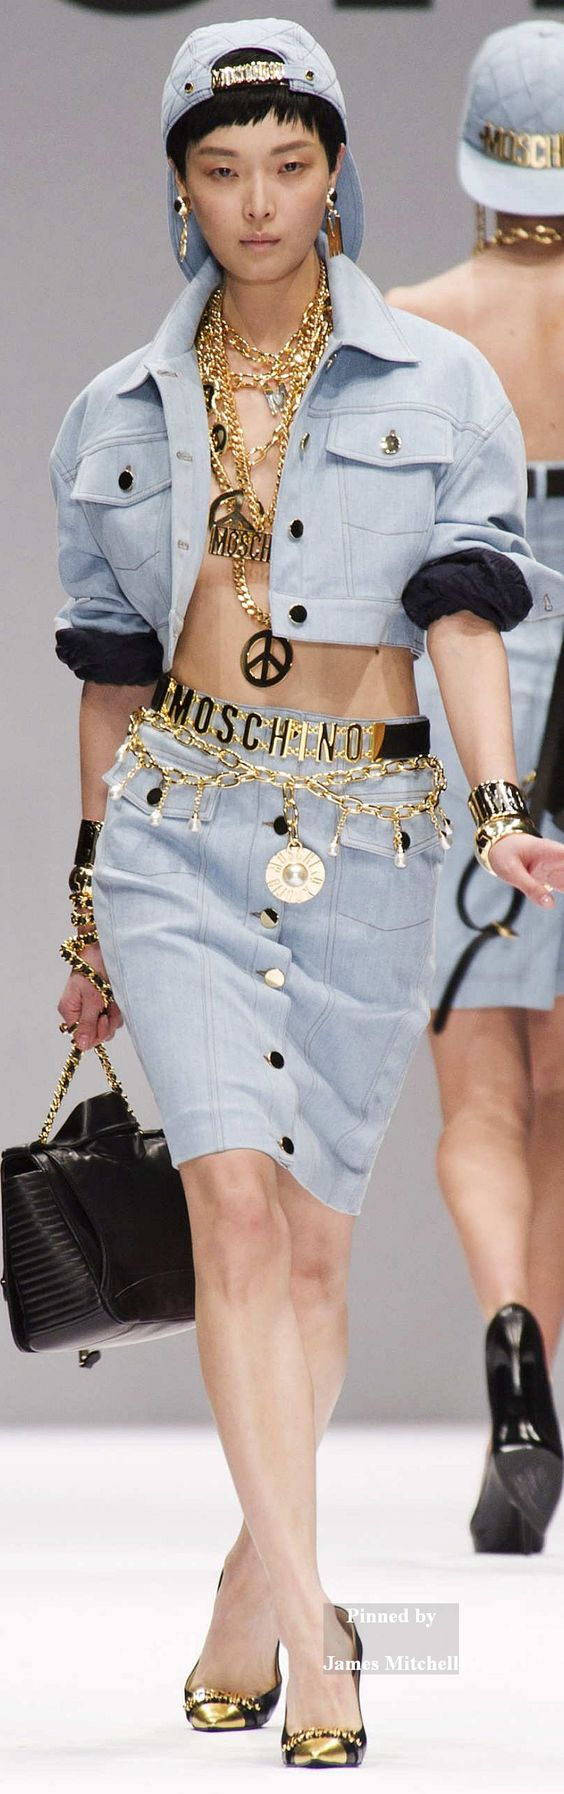 Moschino hip hop style